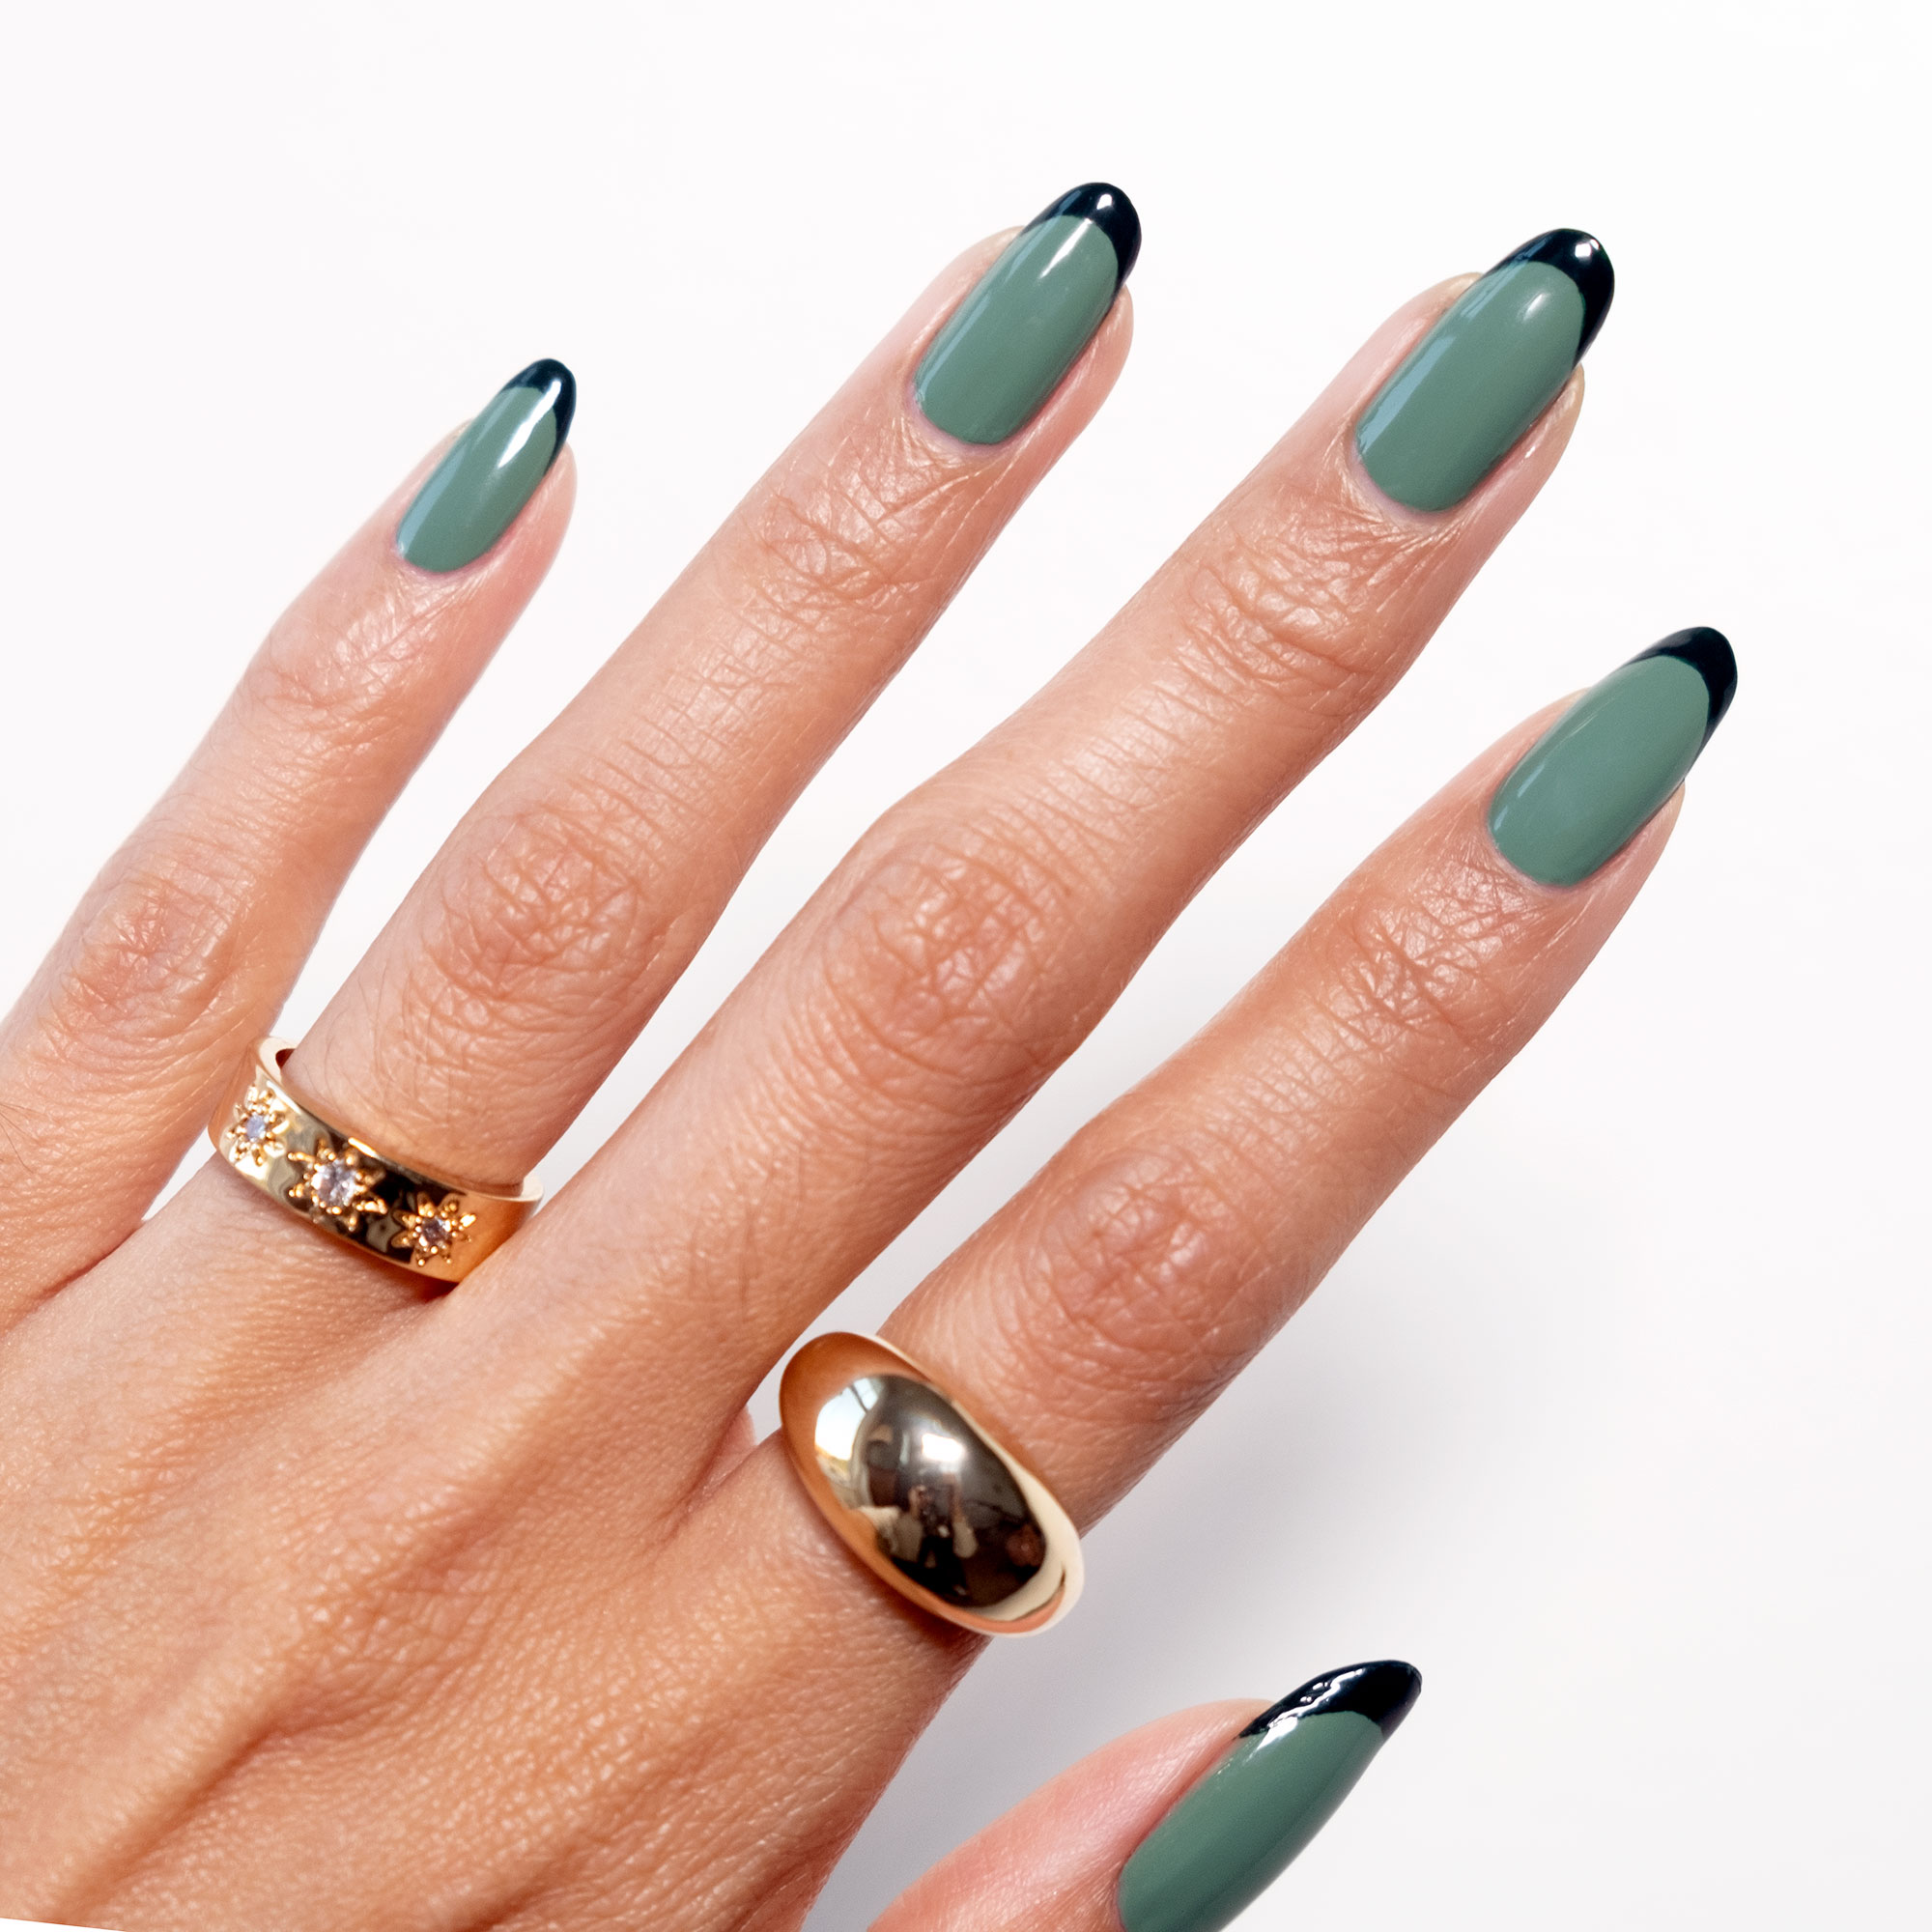 Two Tone Green Nails Are The Fall French Mani You Ve Got To Try Lulus Com Fashion Blog